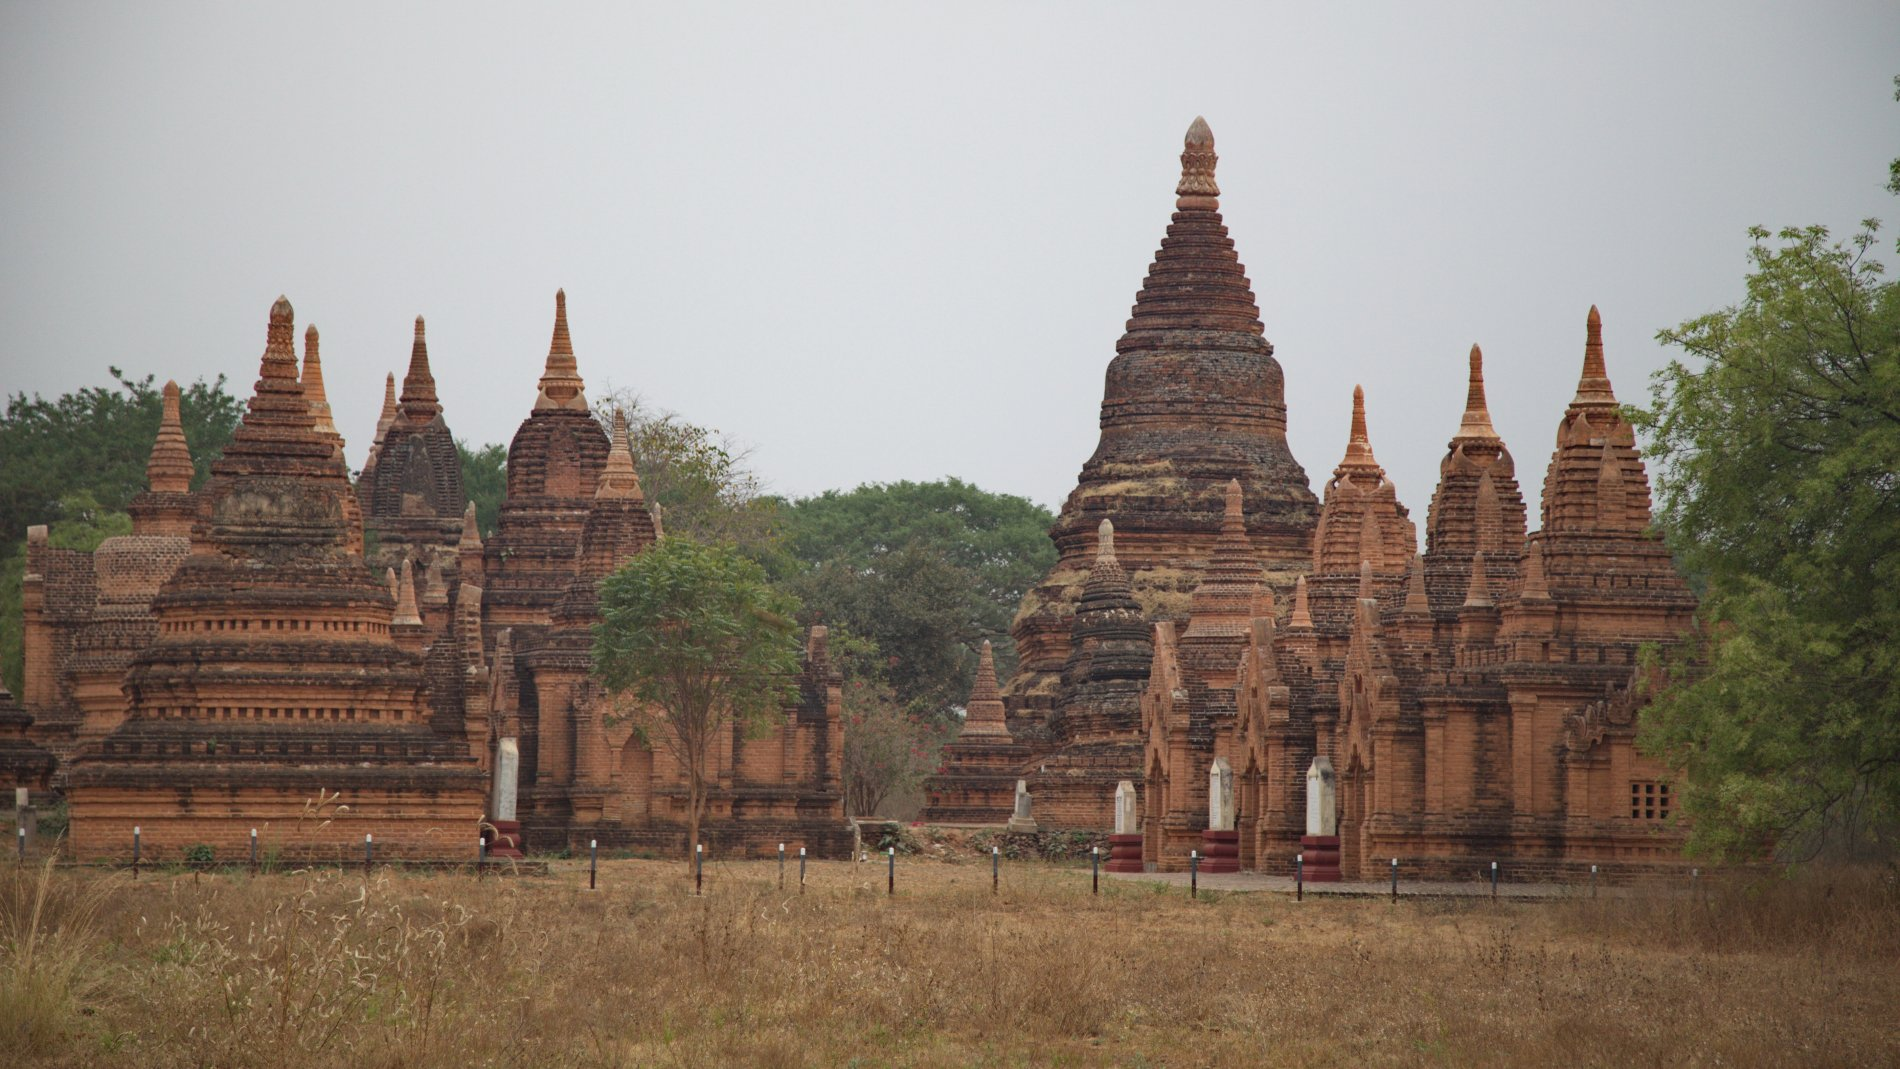 Bagan_161.jpg-commment